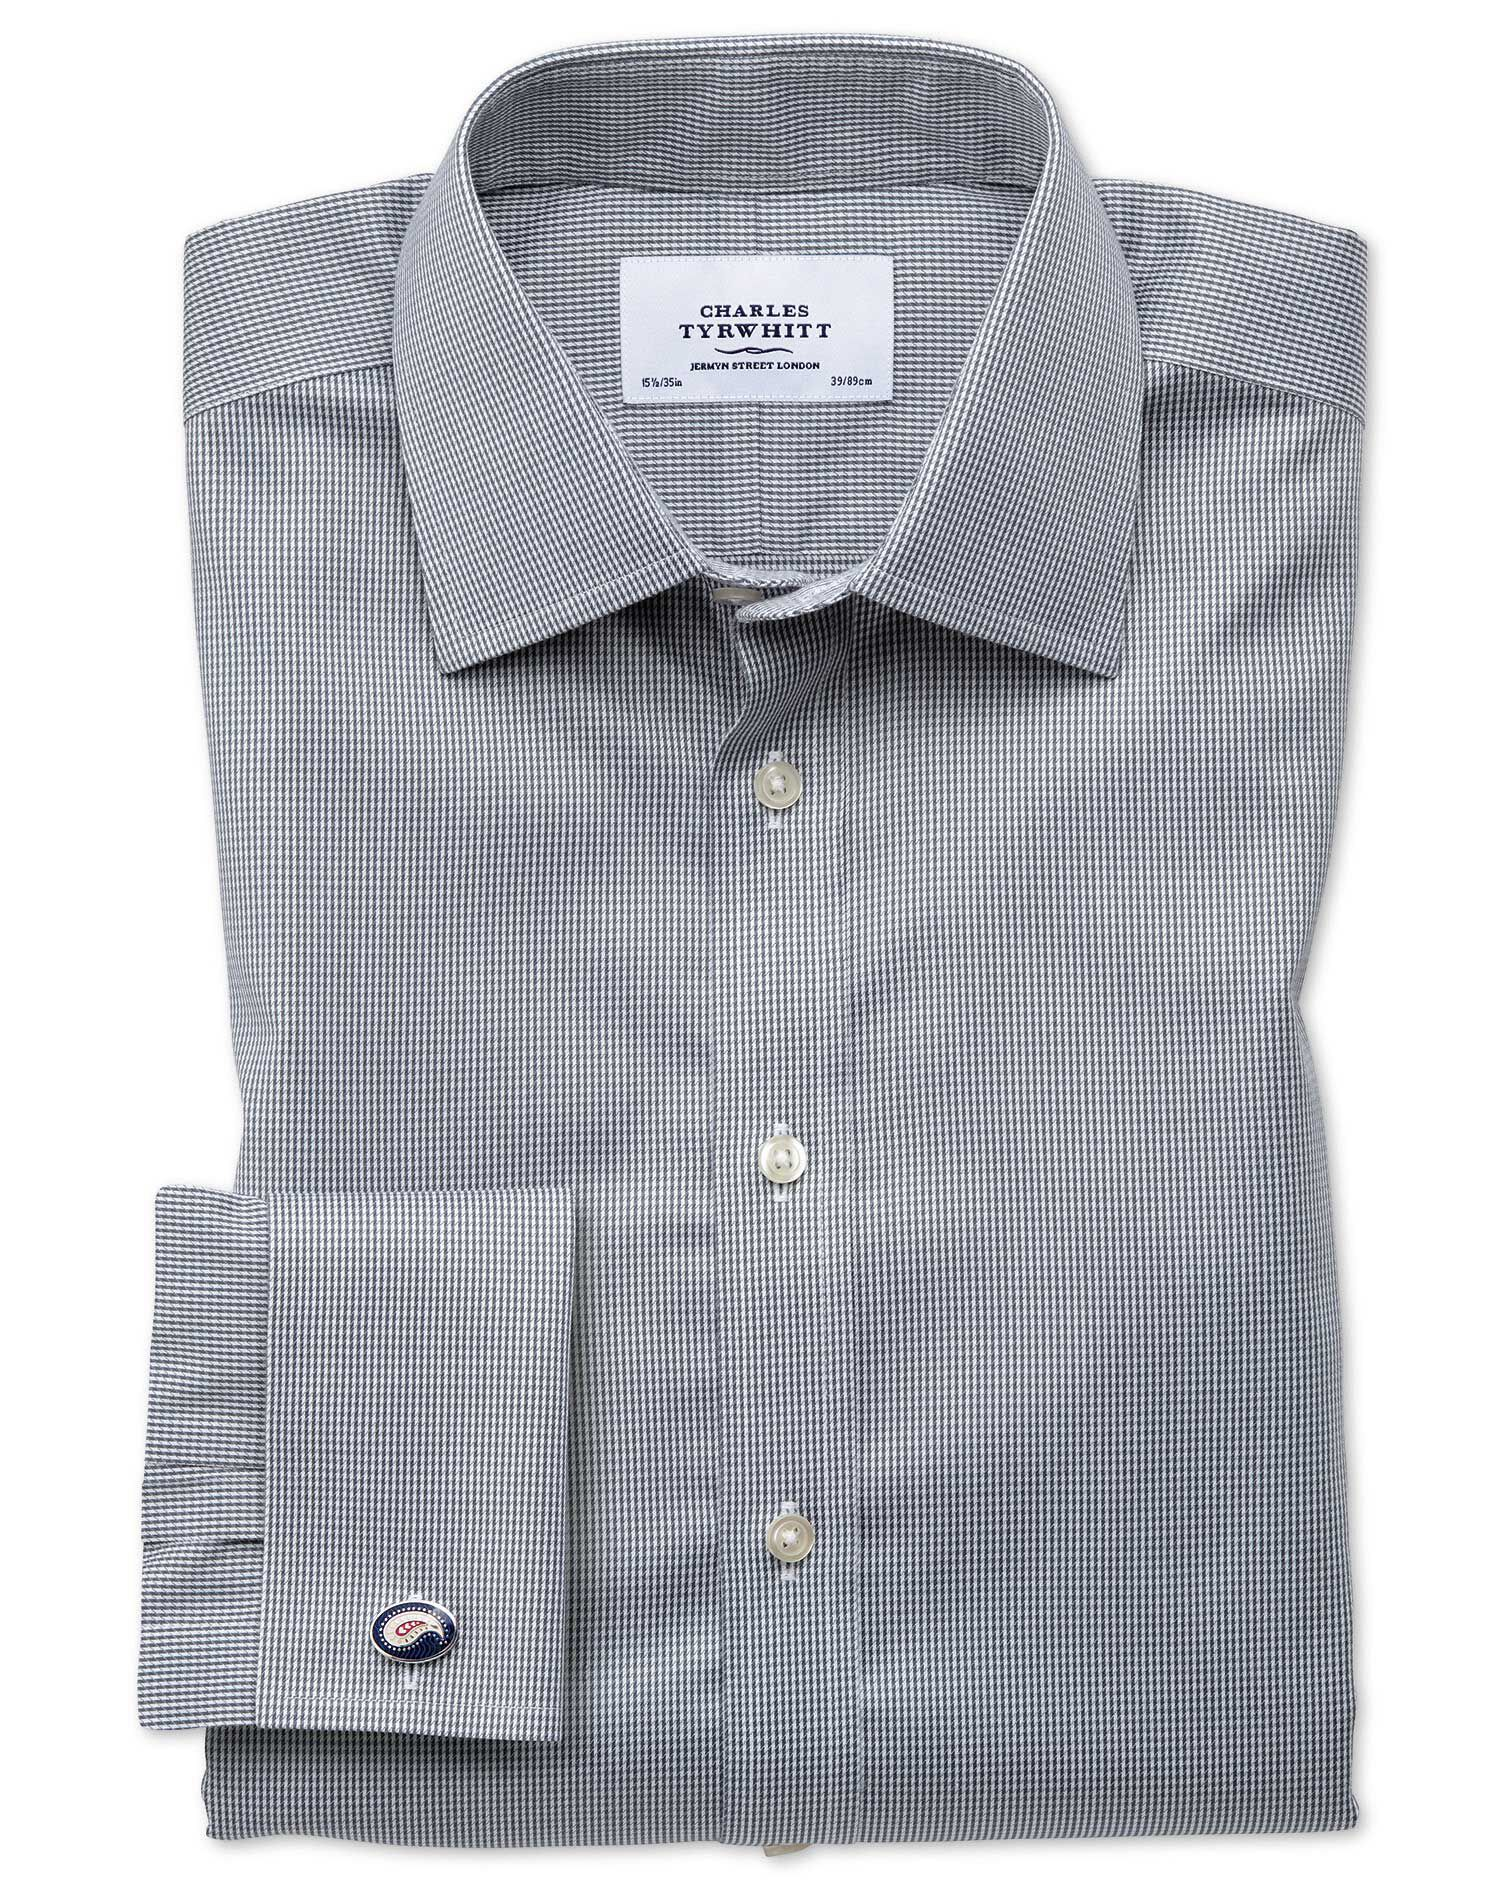 Classic Fit Non-Iron Puppytooth Dark Grey Cotton Formal Shirt Single Cuff Size 17/36 by Charles Tyrw